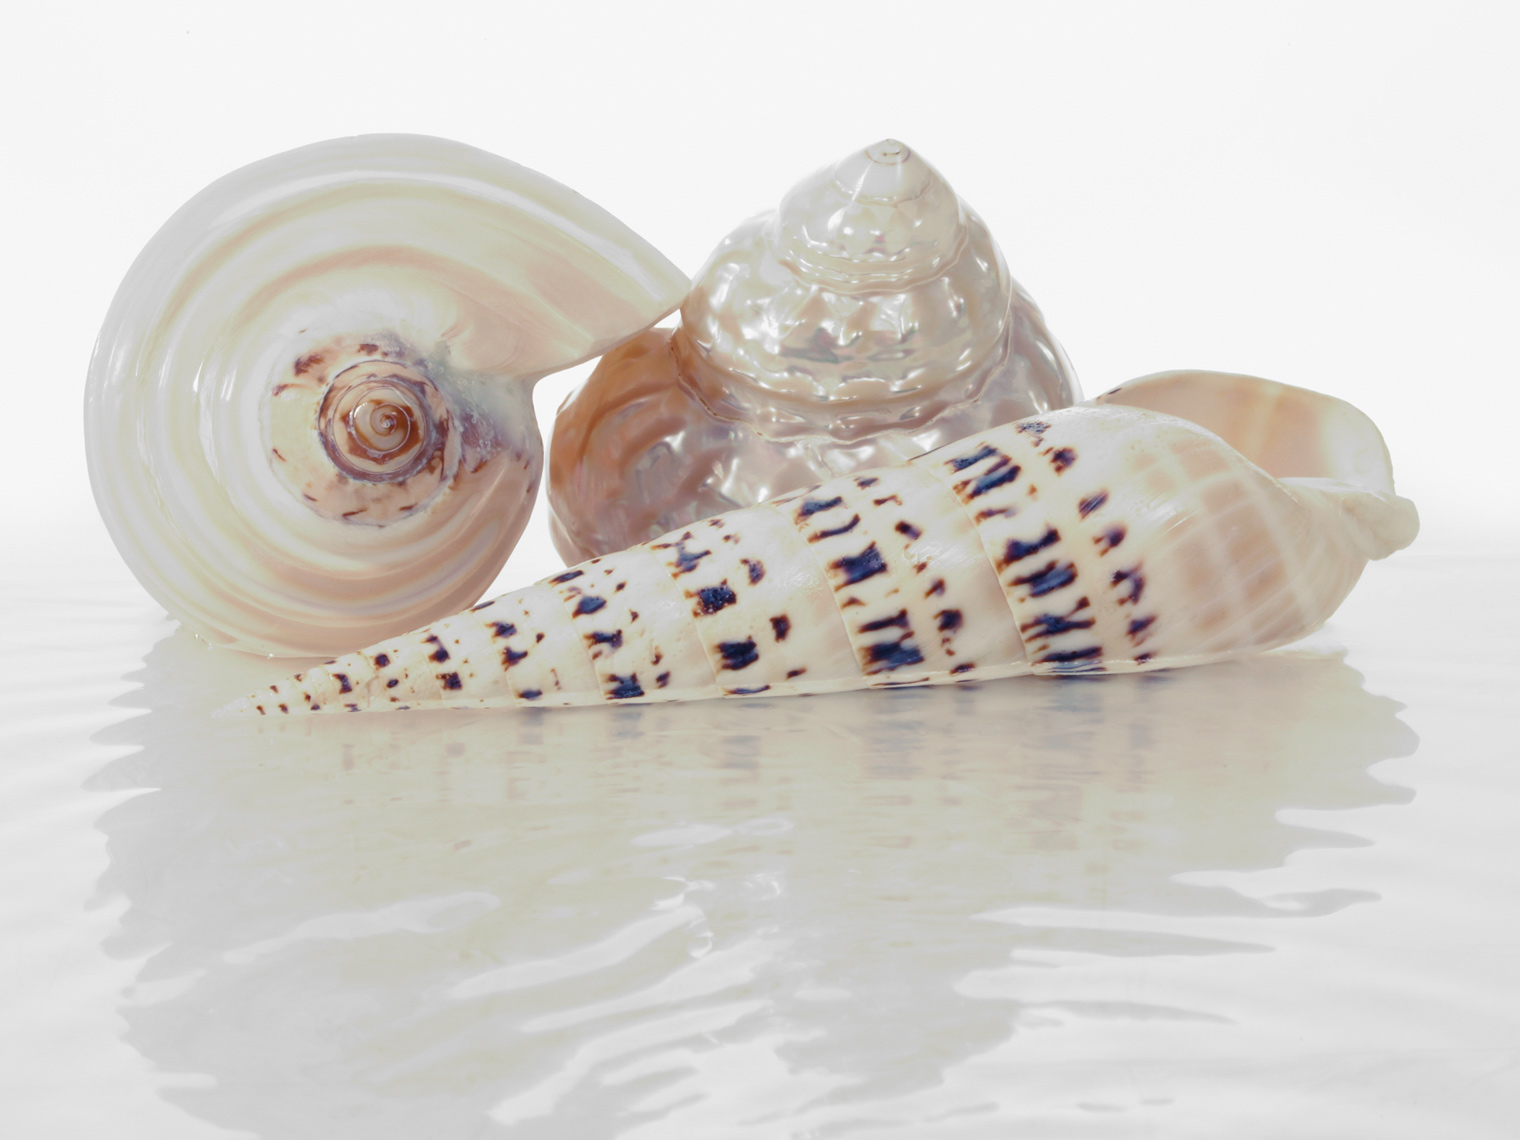 Three_Shells_in_Water.jpg